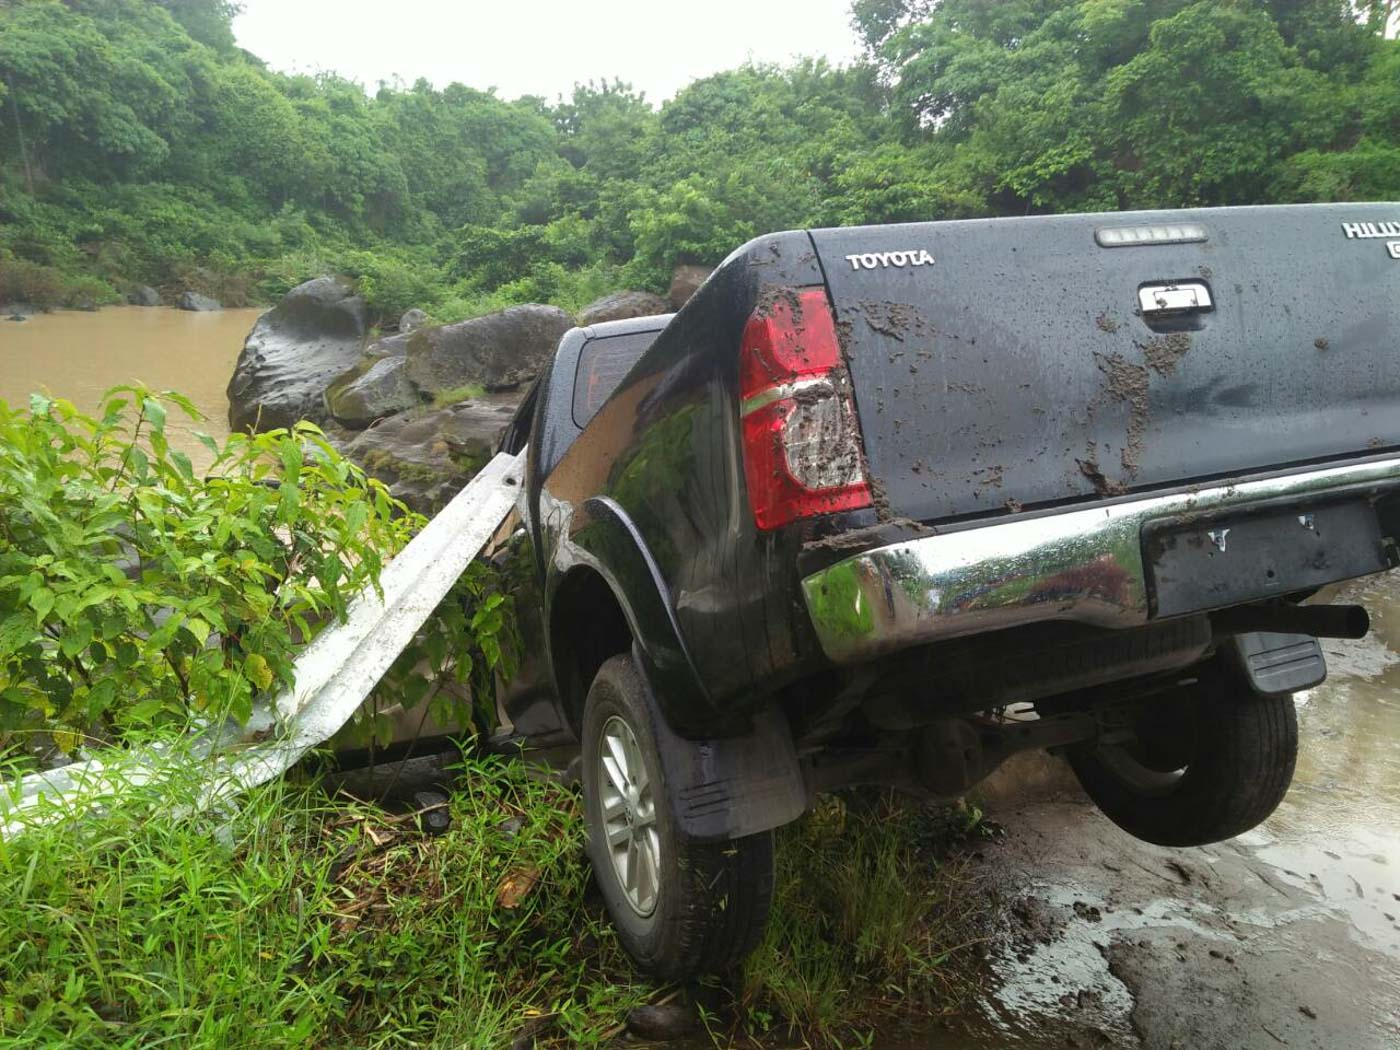 ESCAPE VEHICLE? Cops find a Toyota Hilux which appears to be intended for disposal in Maragondon, Cavite. PNP photo